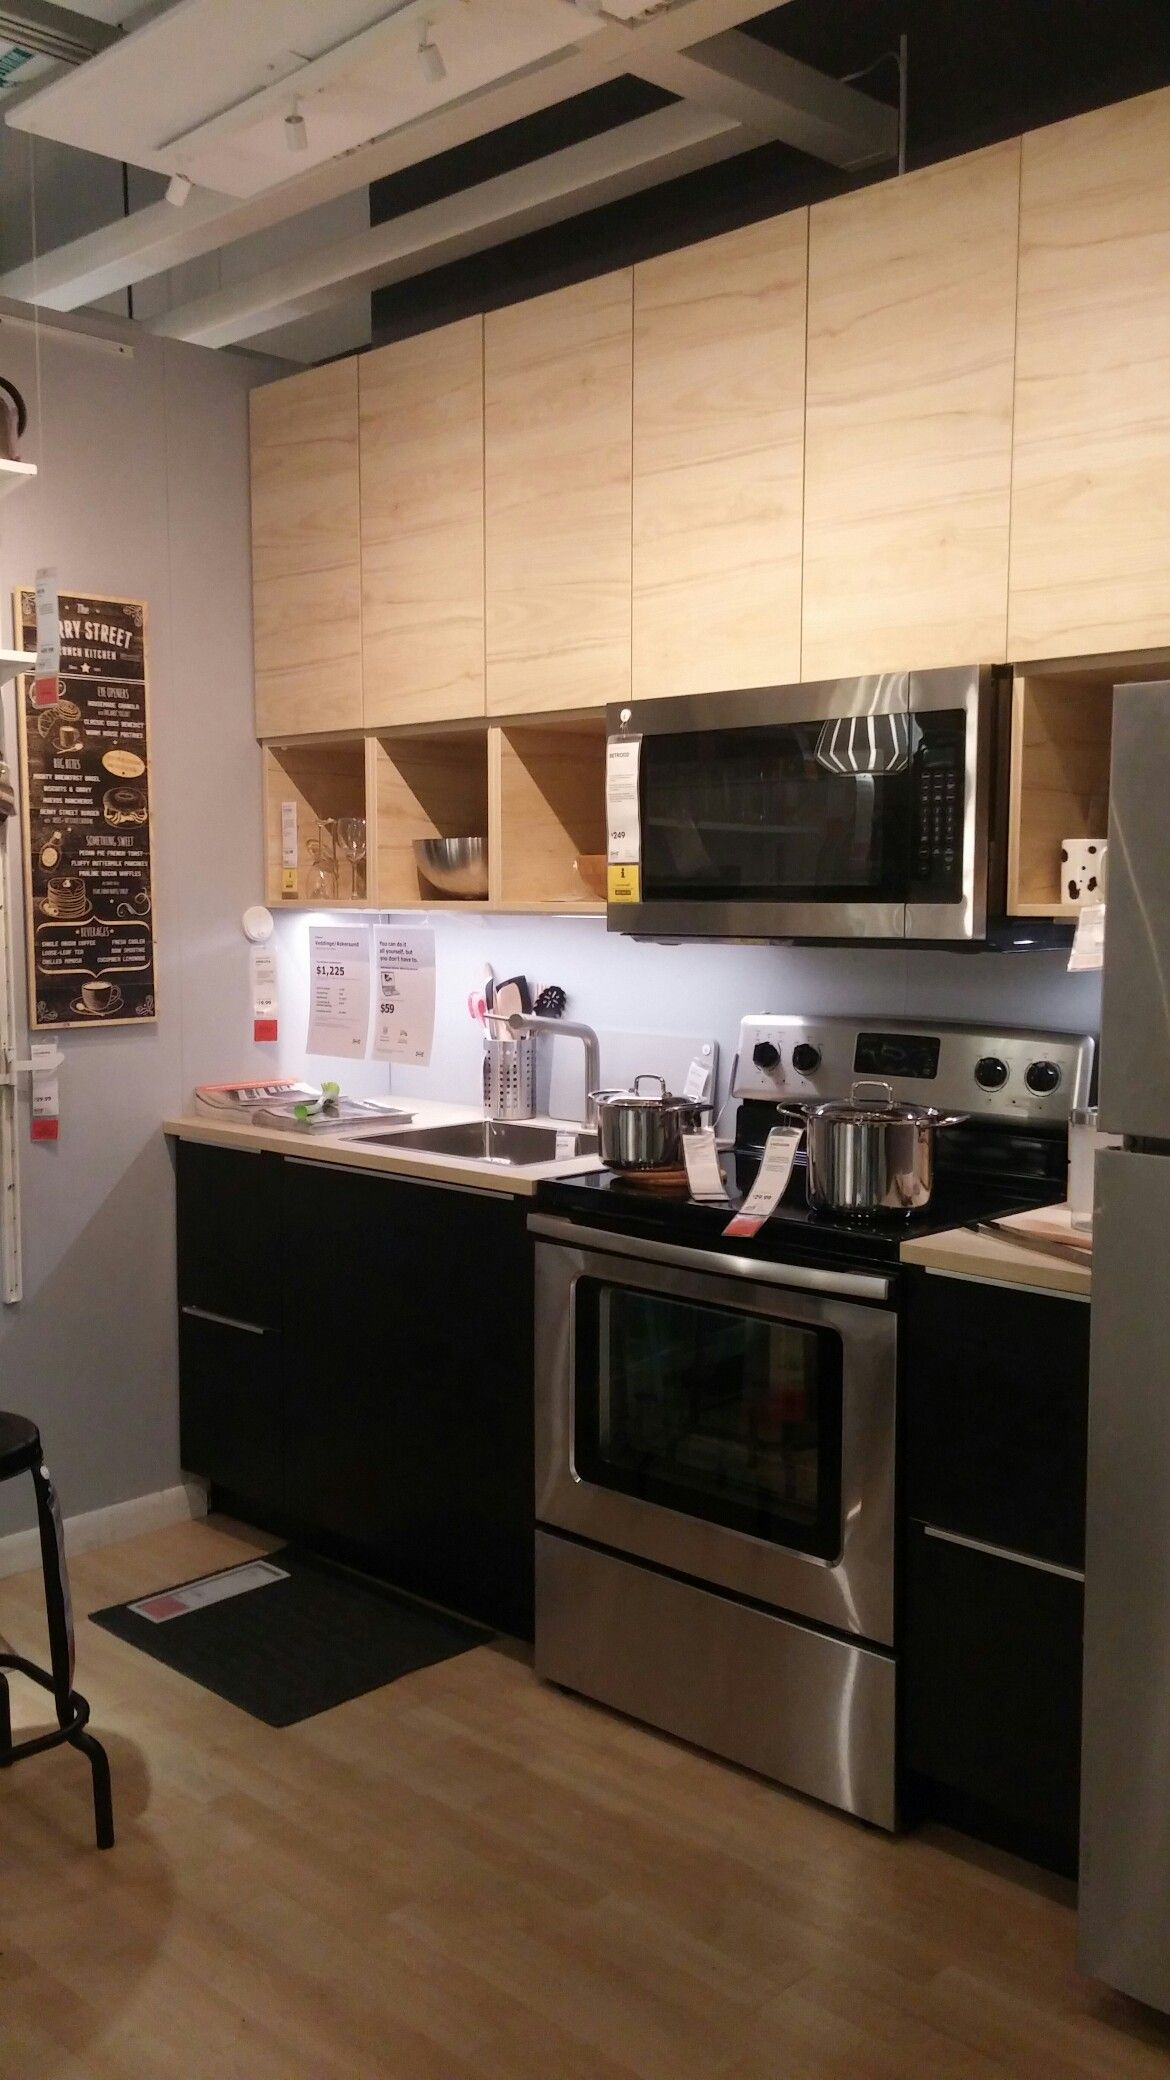 Ikea Askersund top, Tingsyrd bottom with Ash countertop | kitchen ...